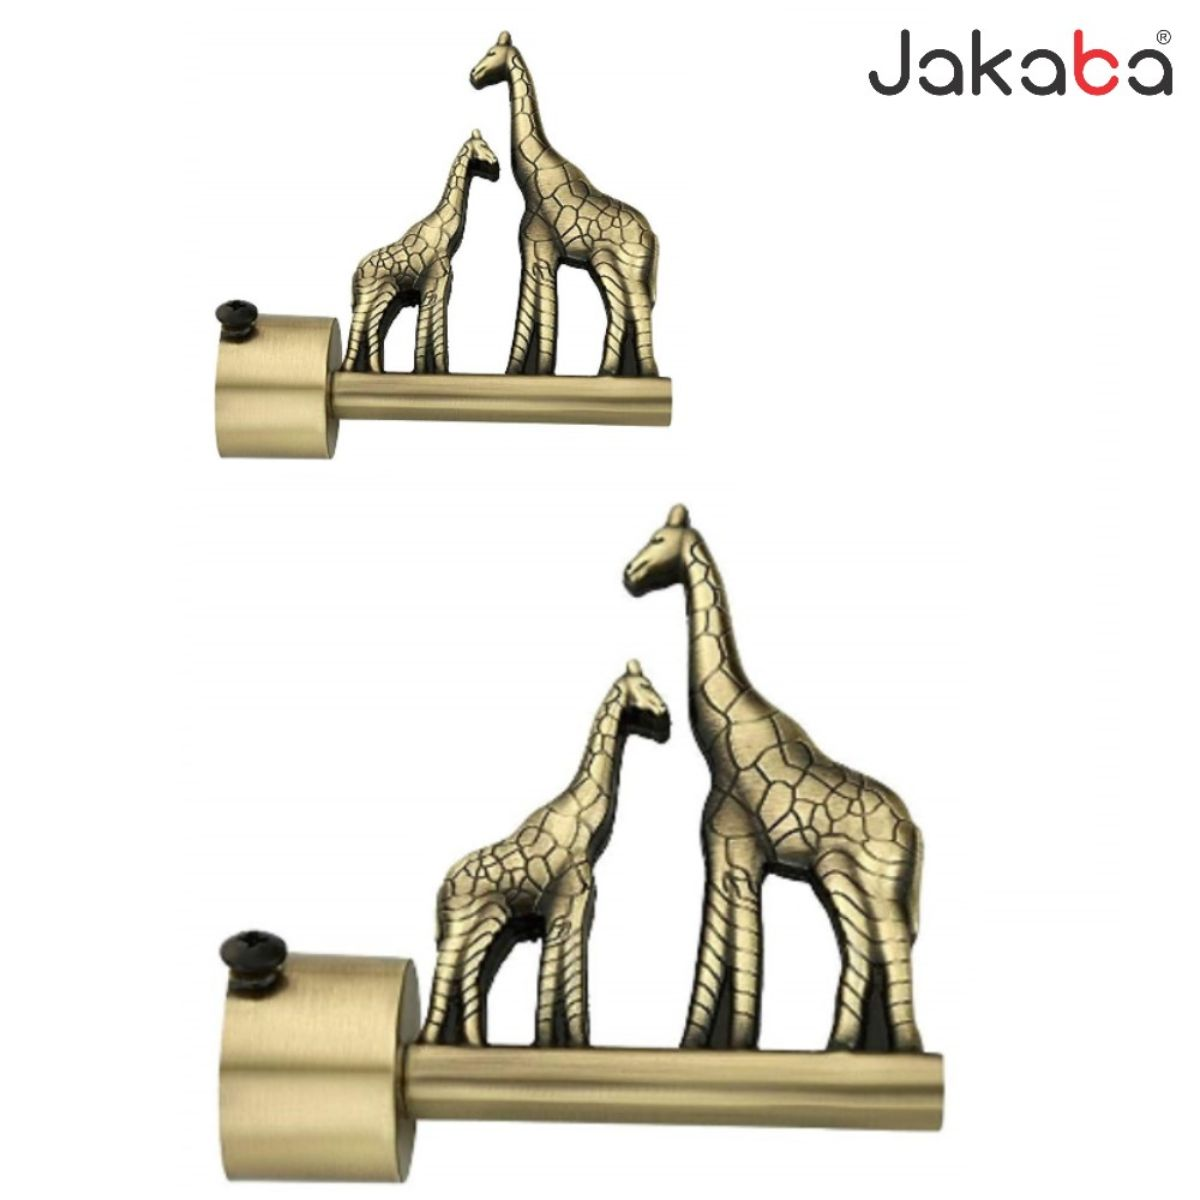 jakaba antique brass curtain finials without supports pack of 2 pcs 1 pair curtain brackets set holders jkbatq947 01 wos